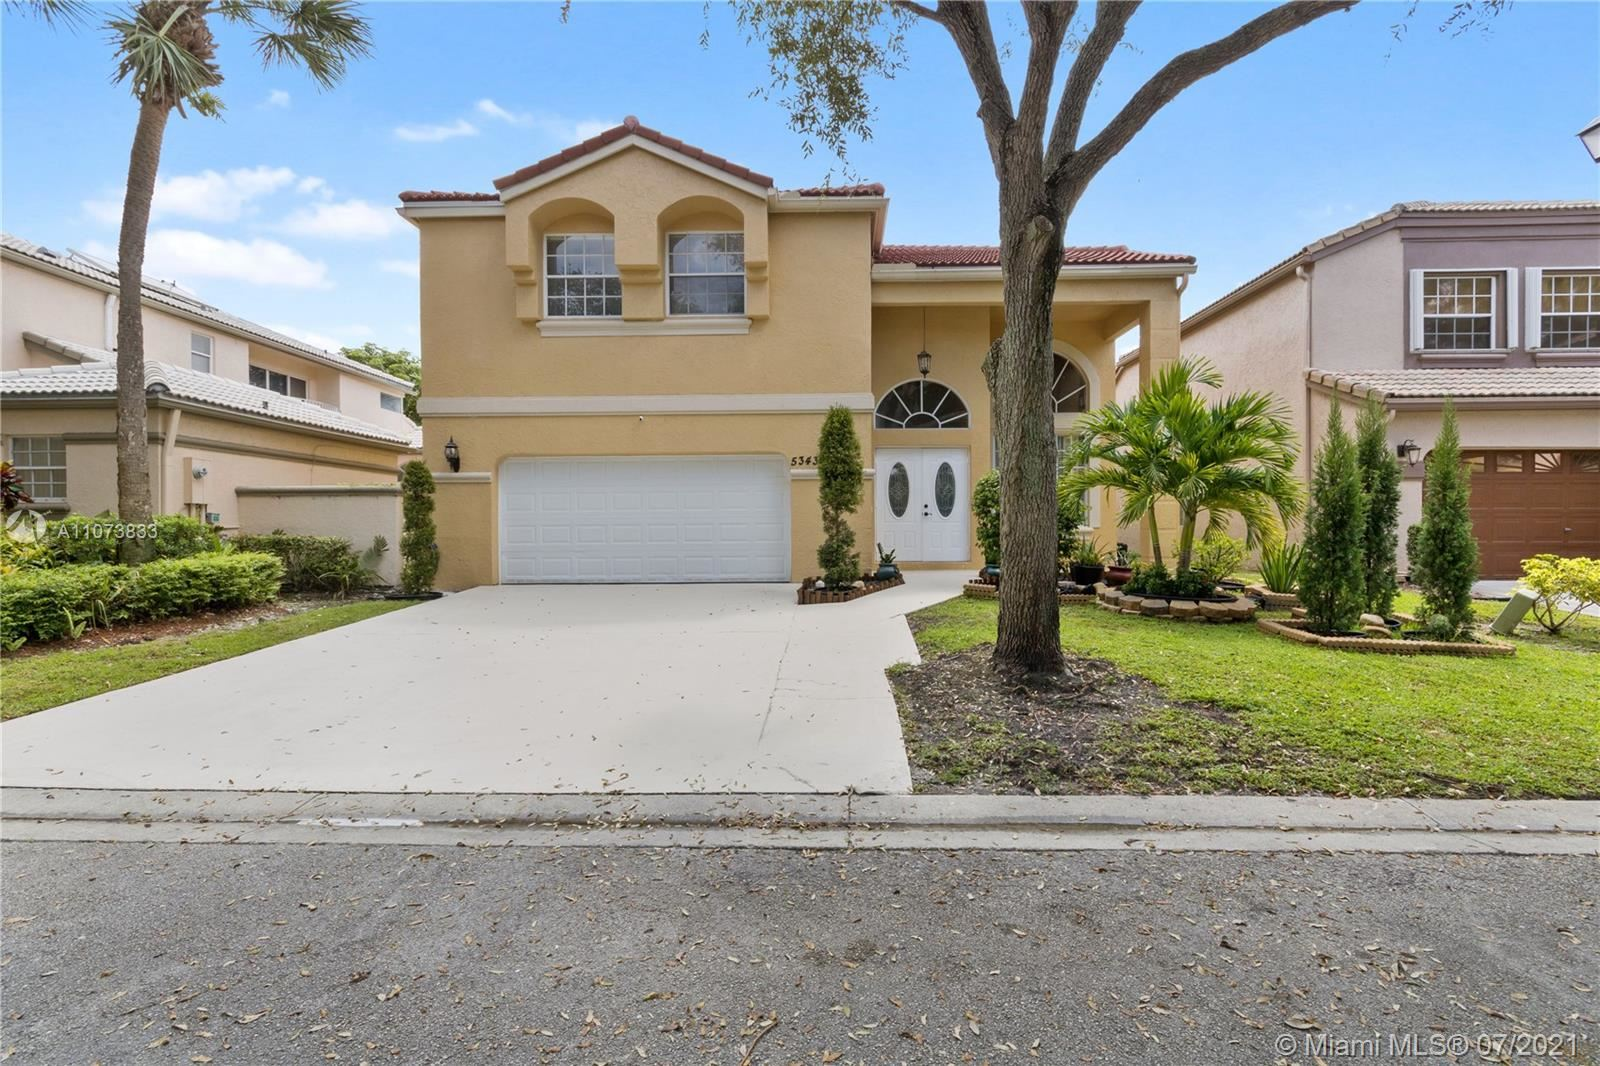 5343 NW 106th Dr, Coral Springs, FL 33076 - #: A11073833